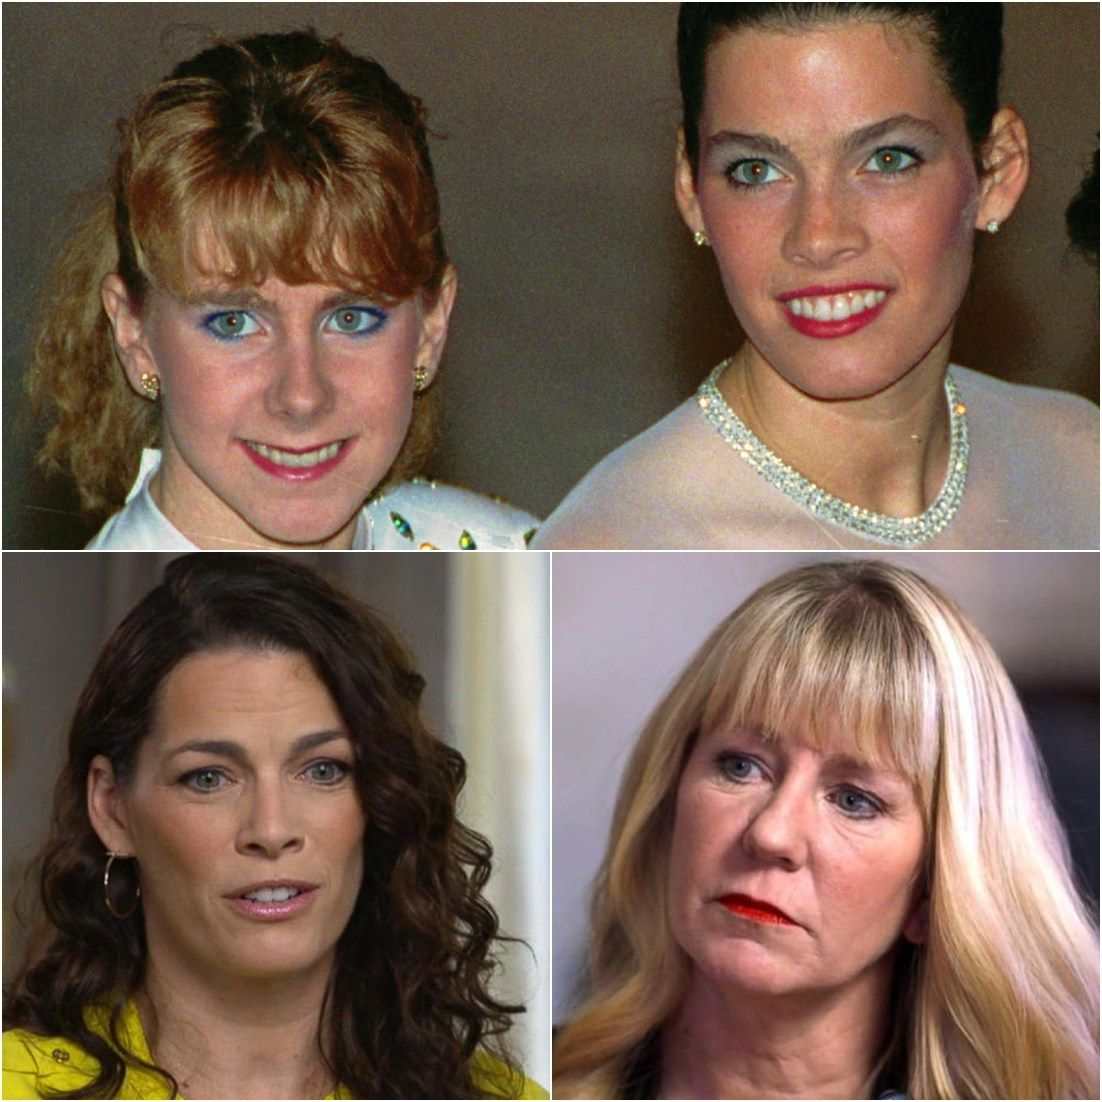 Tonya Harding Has Always Said She Had No Idea What Happened To Nancy Kerrigan Until Now Nancy Kerrigan Says She Never Go Tonya Harding Nancy Kerrigan Harding